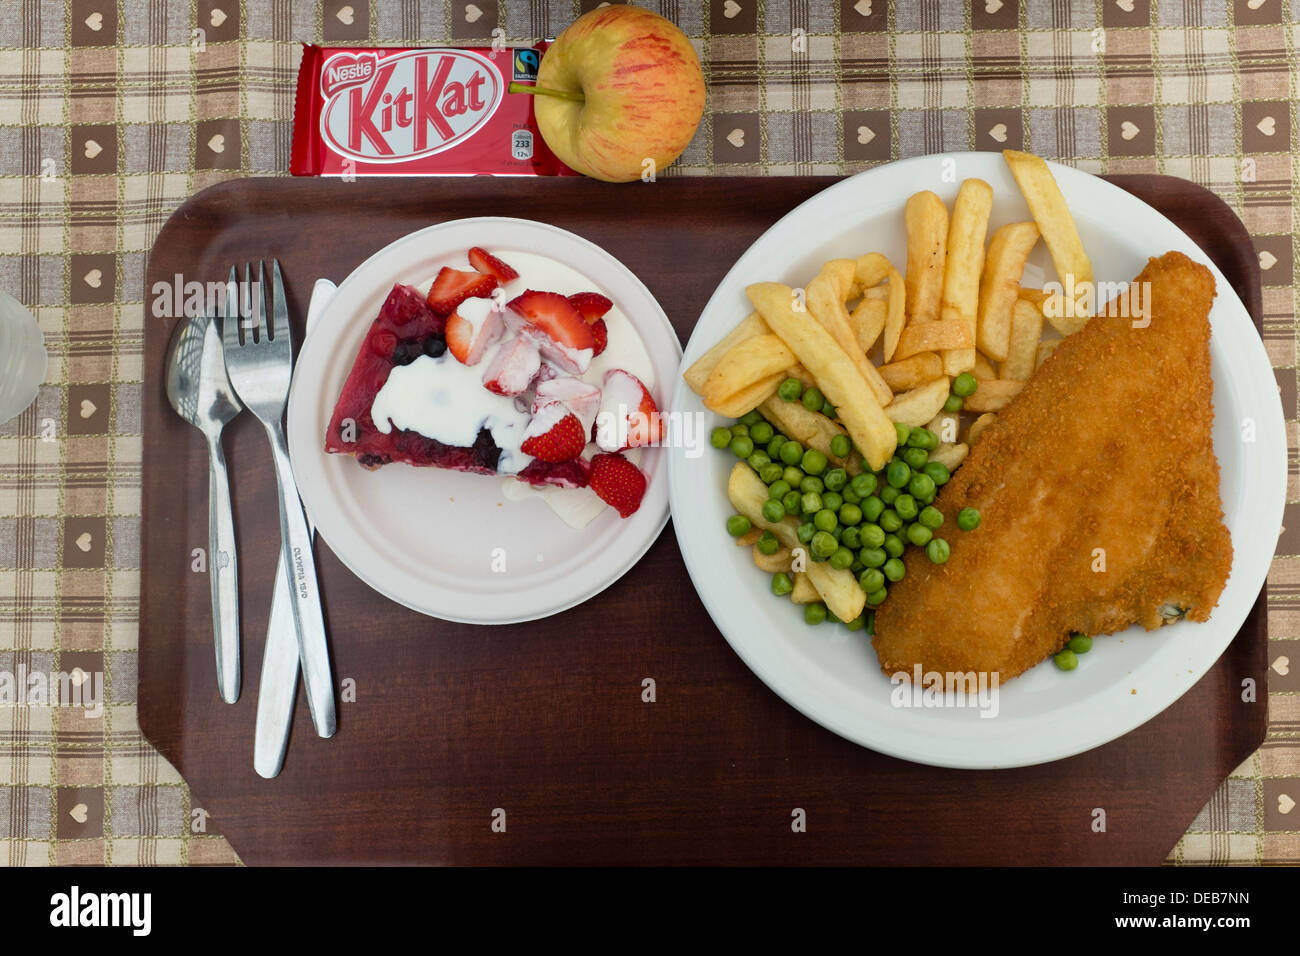 A plate of fish and chips and peas with a pudding and KitKat and apple on a tray, in a canteen, UK - Stock Image